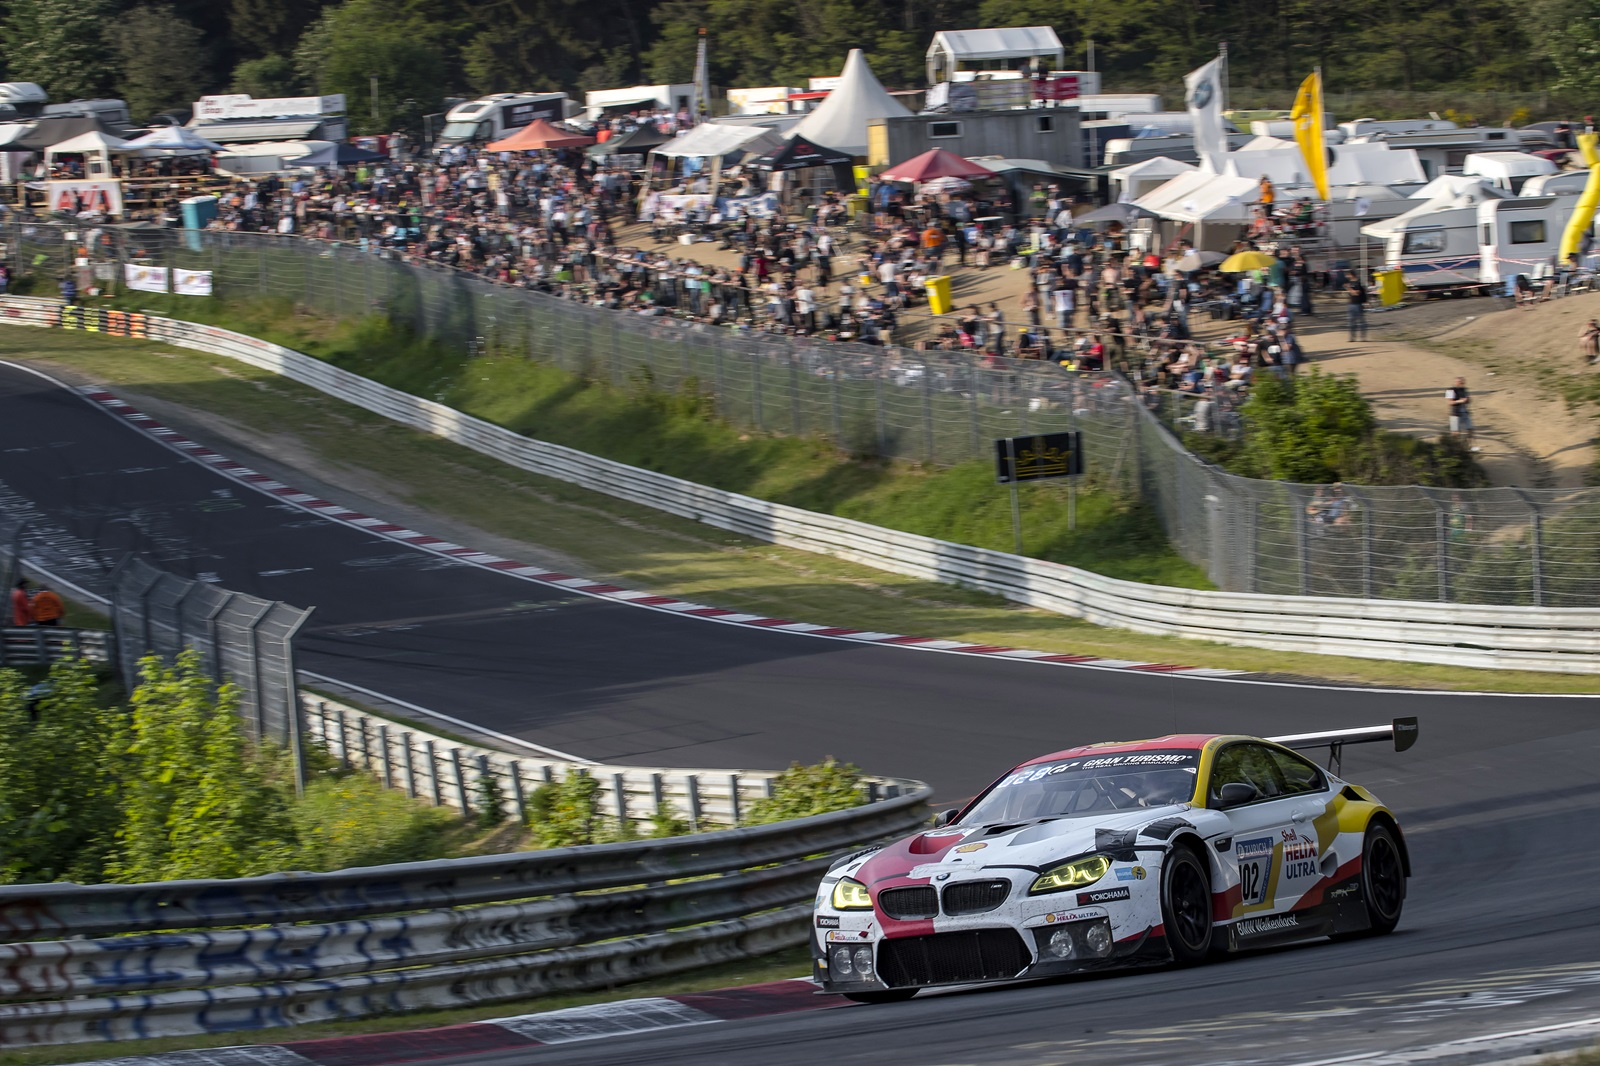 Photo of Endurance – Melhor BMW na prova, Augusto Farfus completa 24 Horas de Nürburgring no top-15